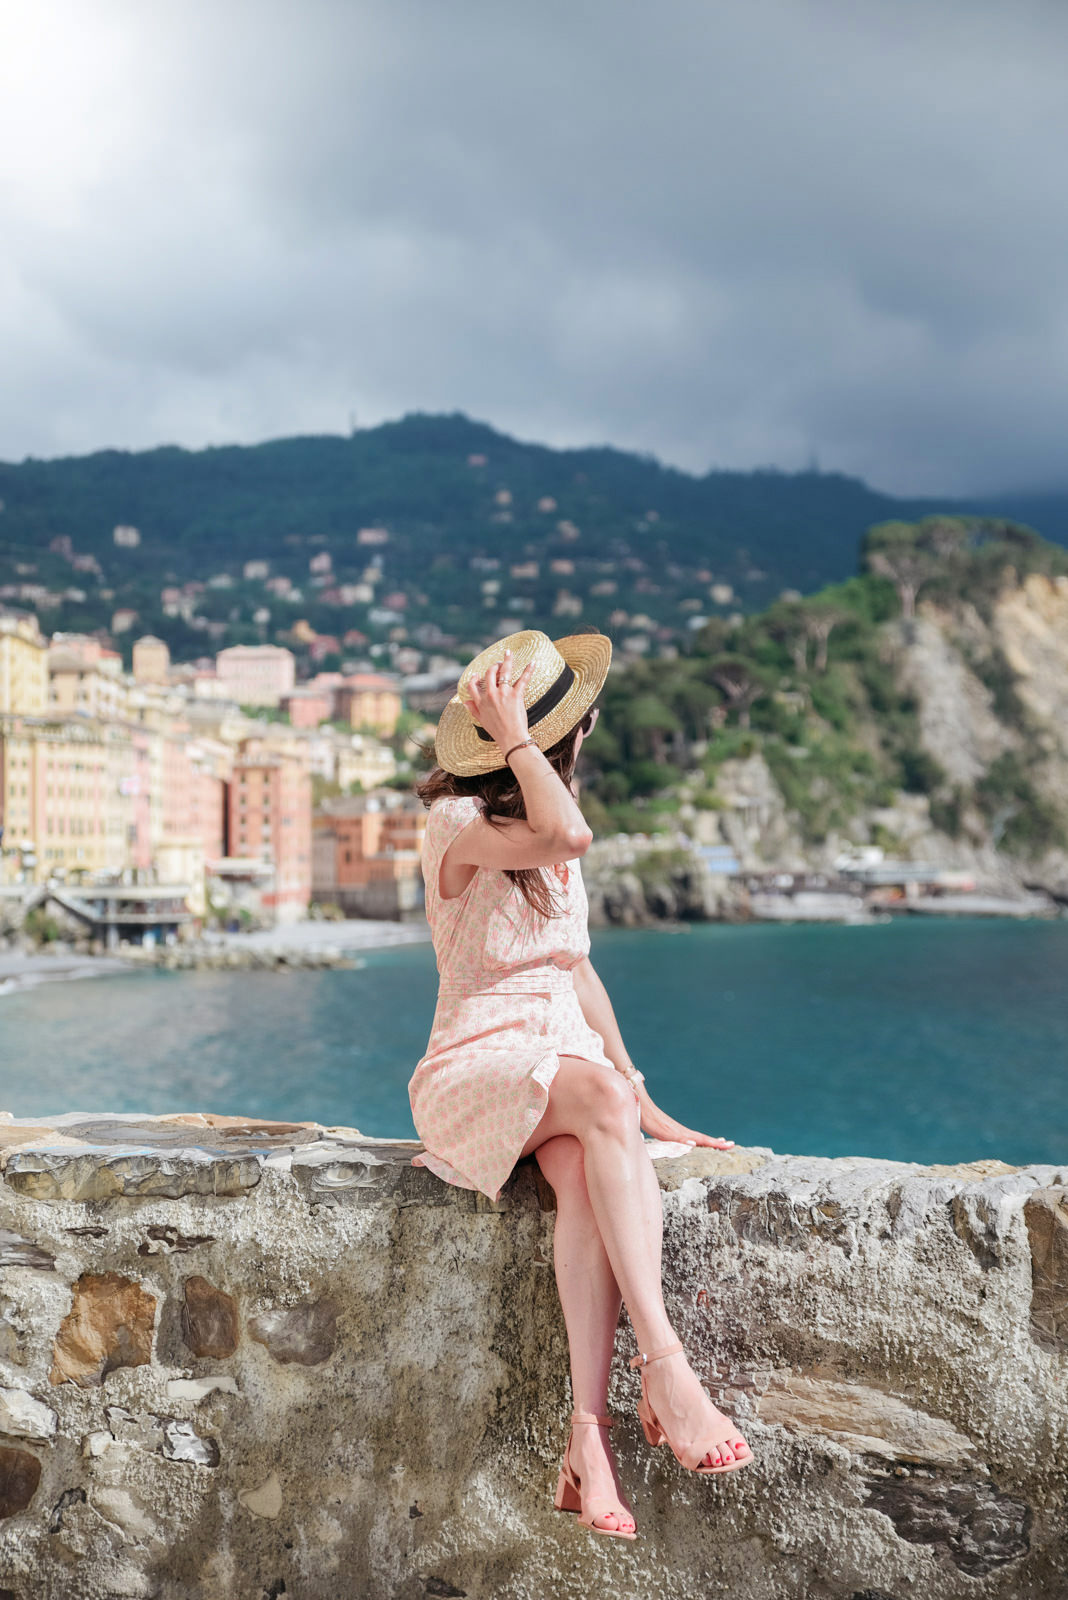 Blog-Mode-And-The-City-Lifestyle-Italie-Bocadasse-Camogli-Sestri-Levante-25